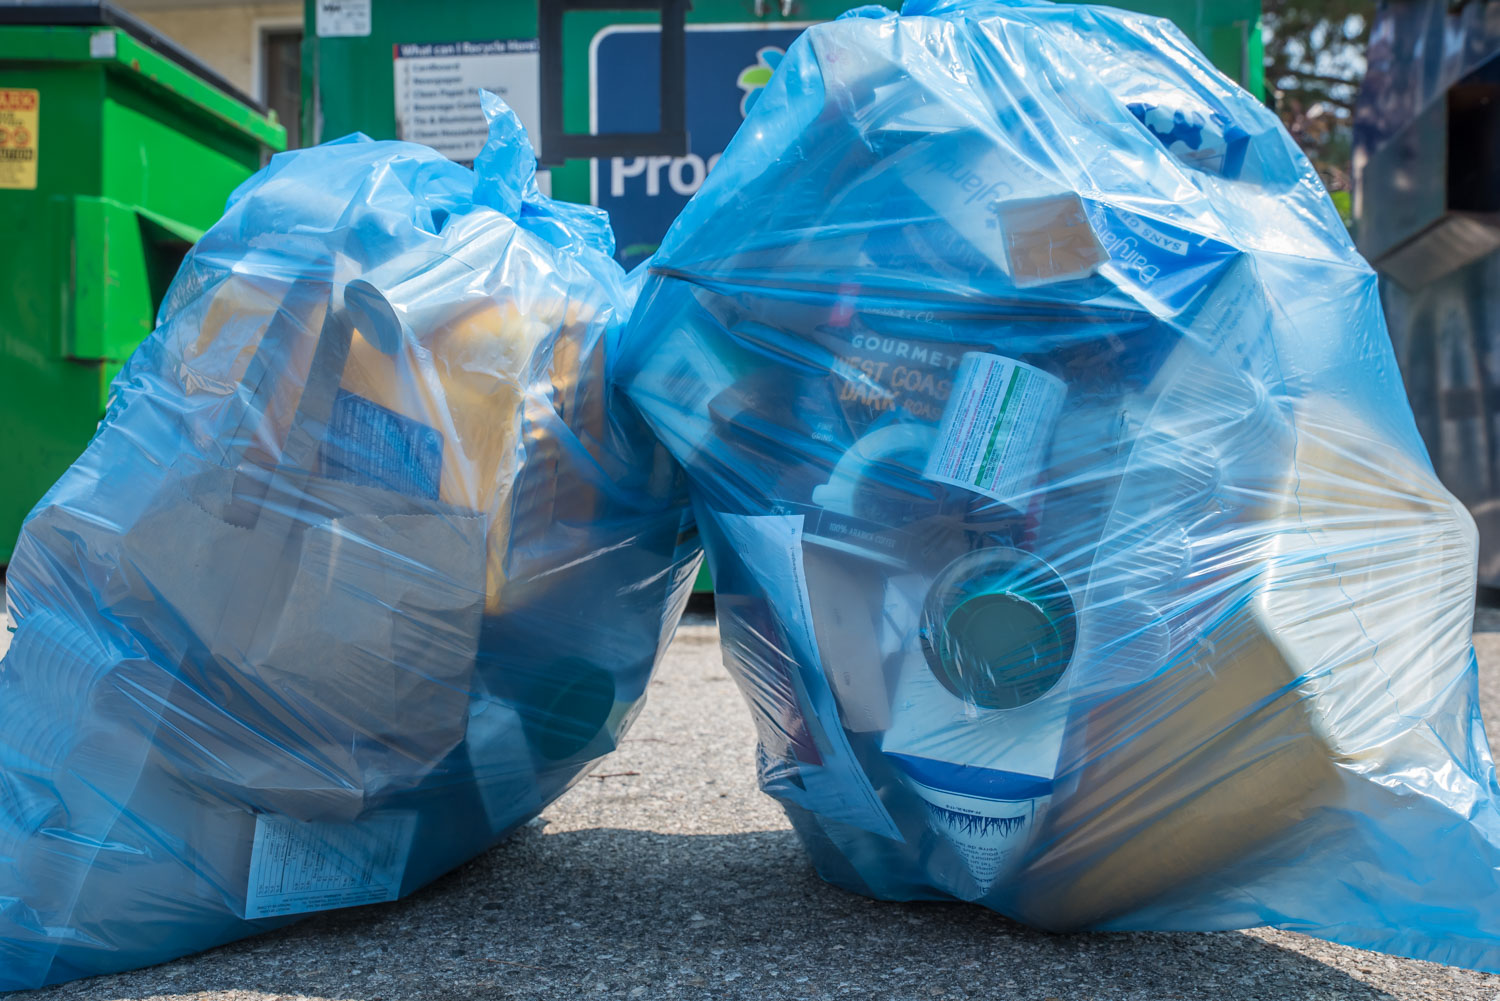 Recycle Bc Forcing Town To Get Rid Of Blue Bags Just After Signed Five Year Collection Contract Osoyoos Times